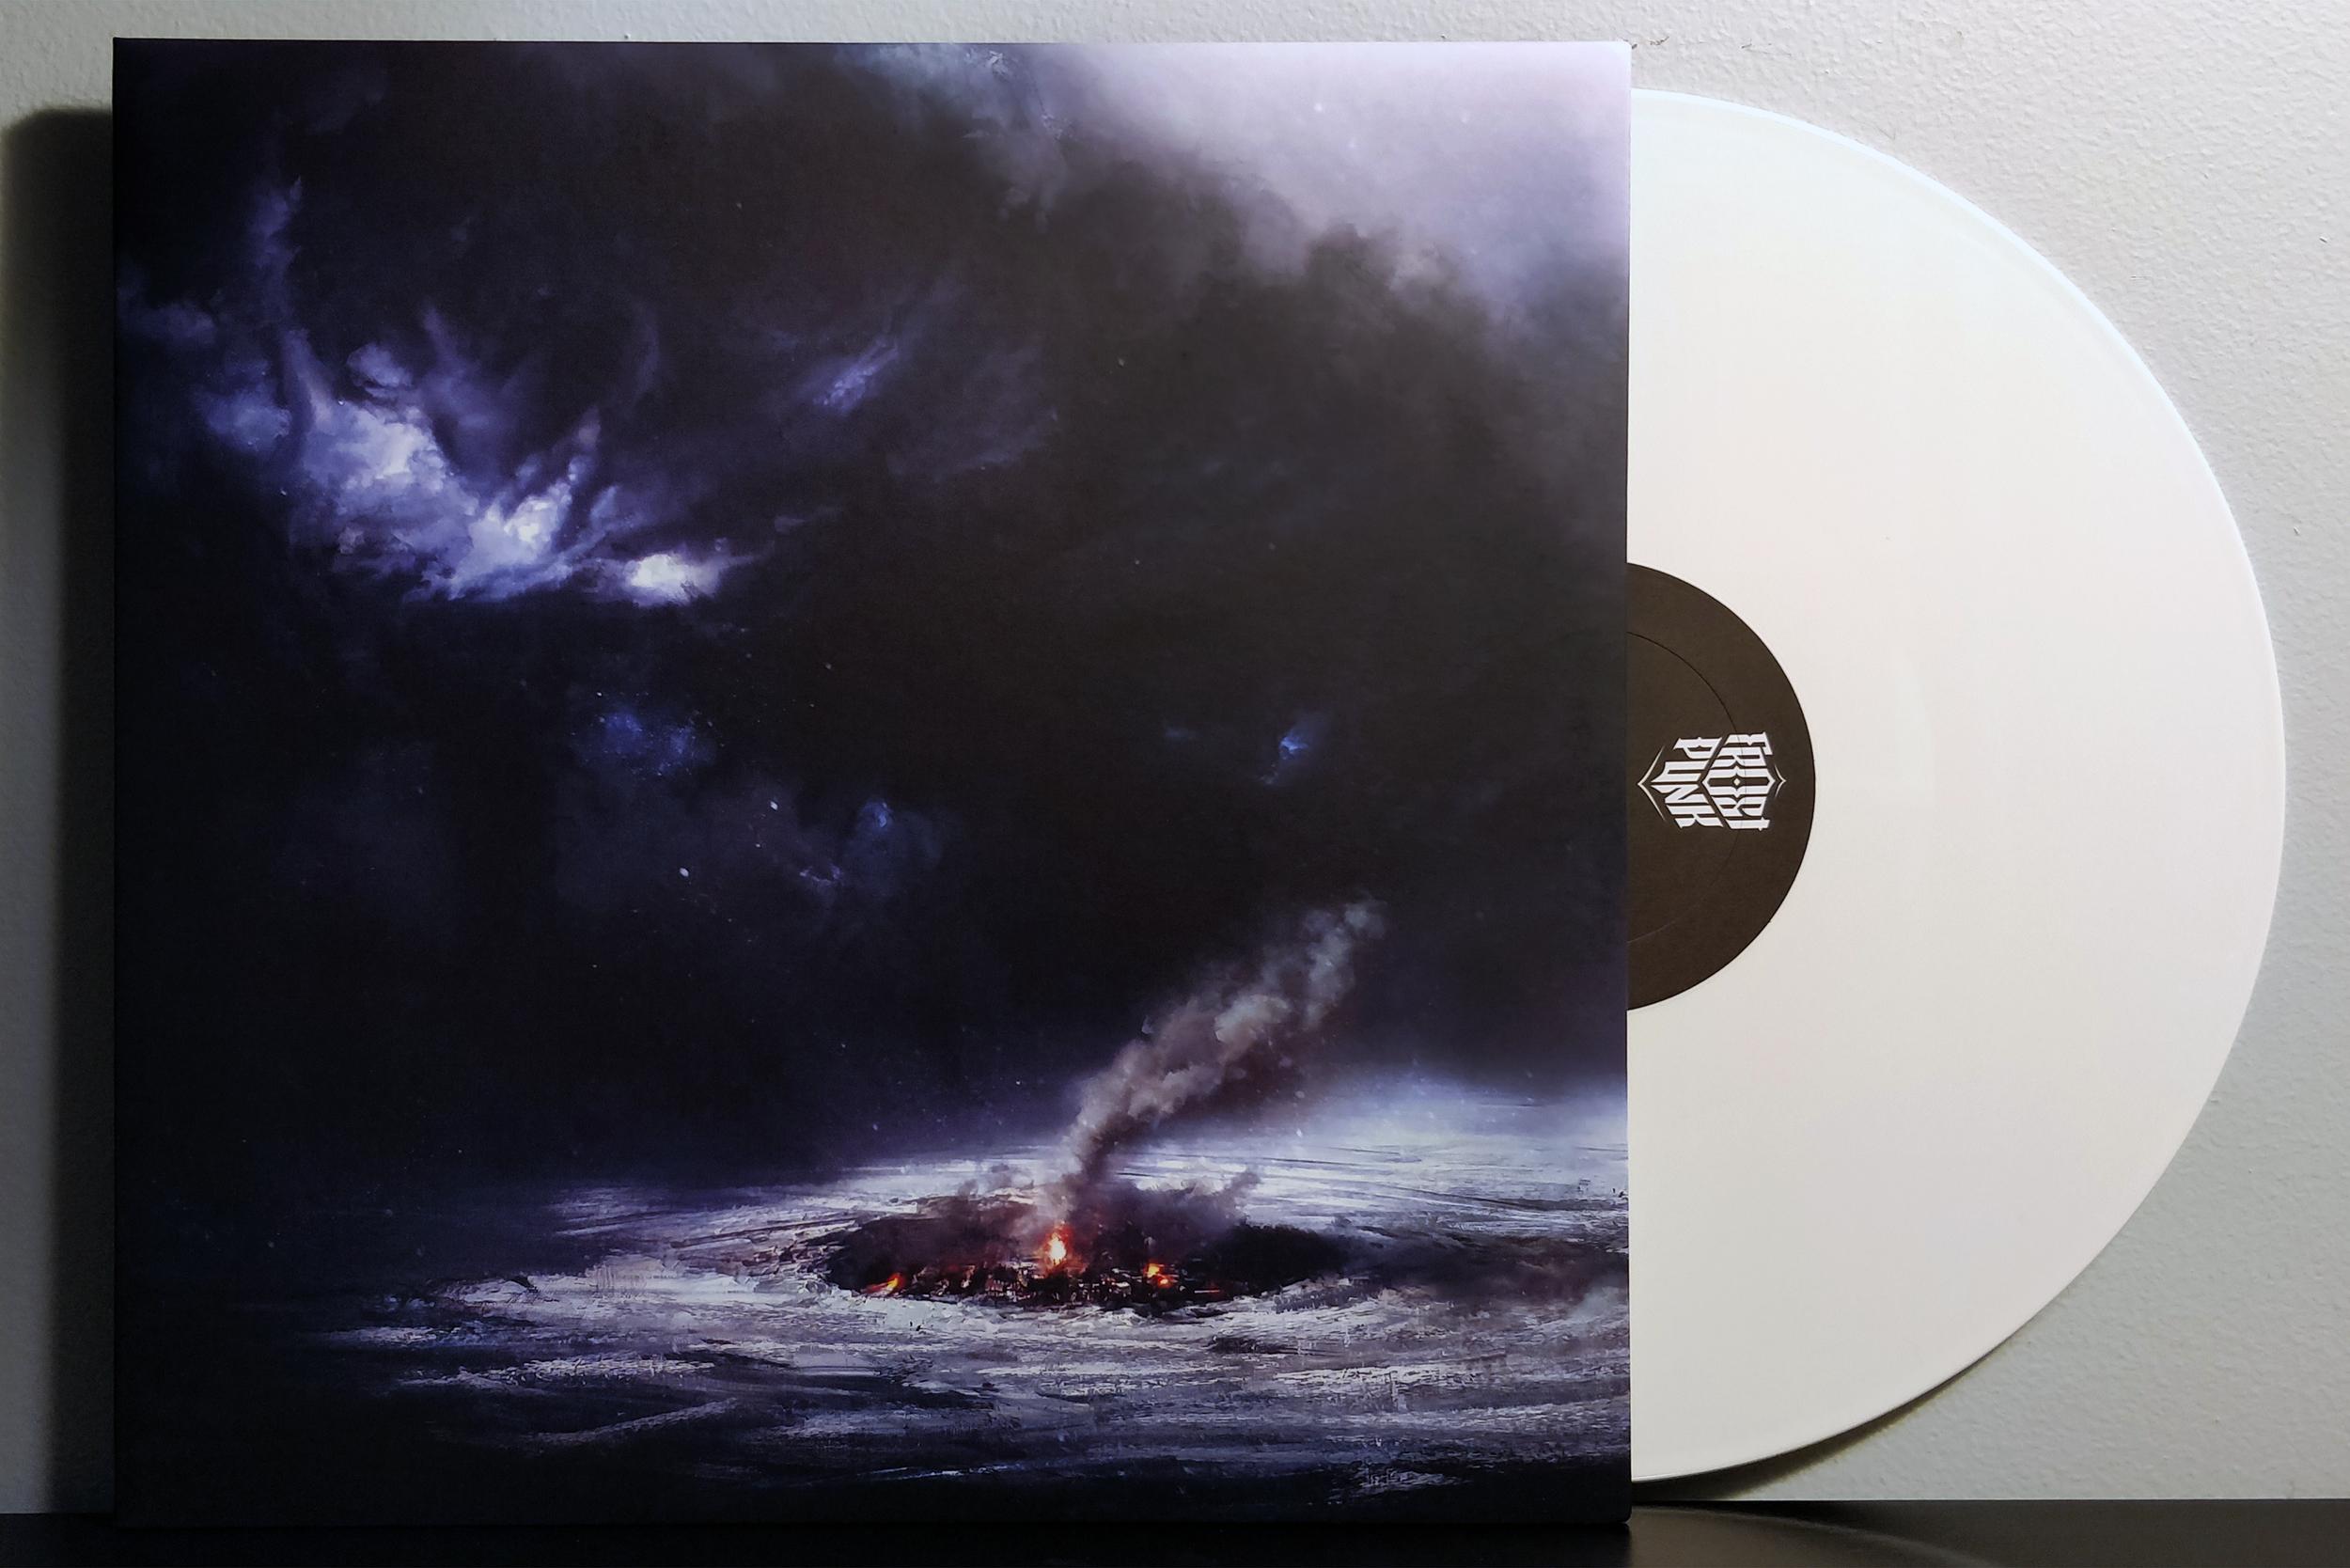 Frostpunk by Piotr Musiał pressed on white vinyl by gamemusic records